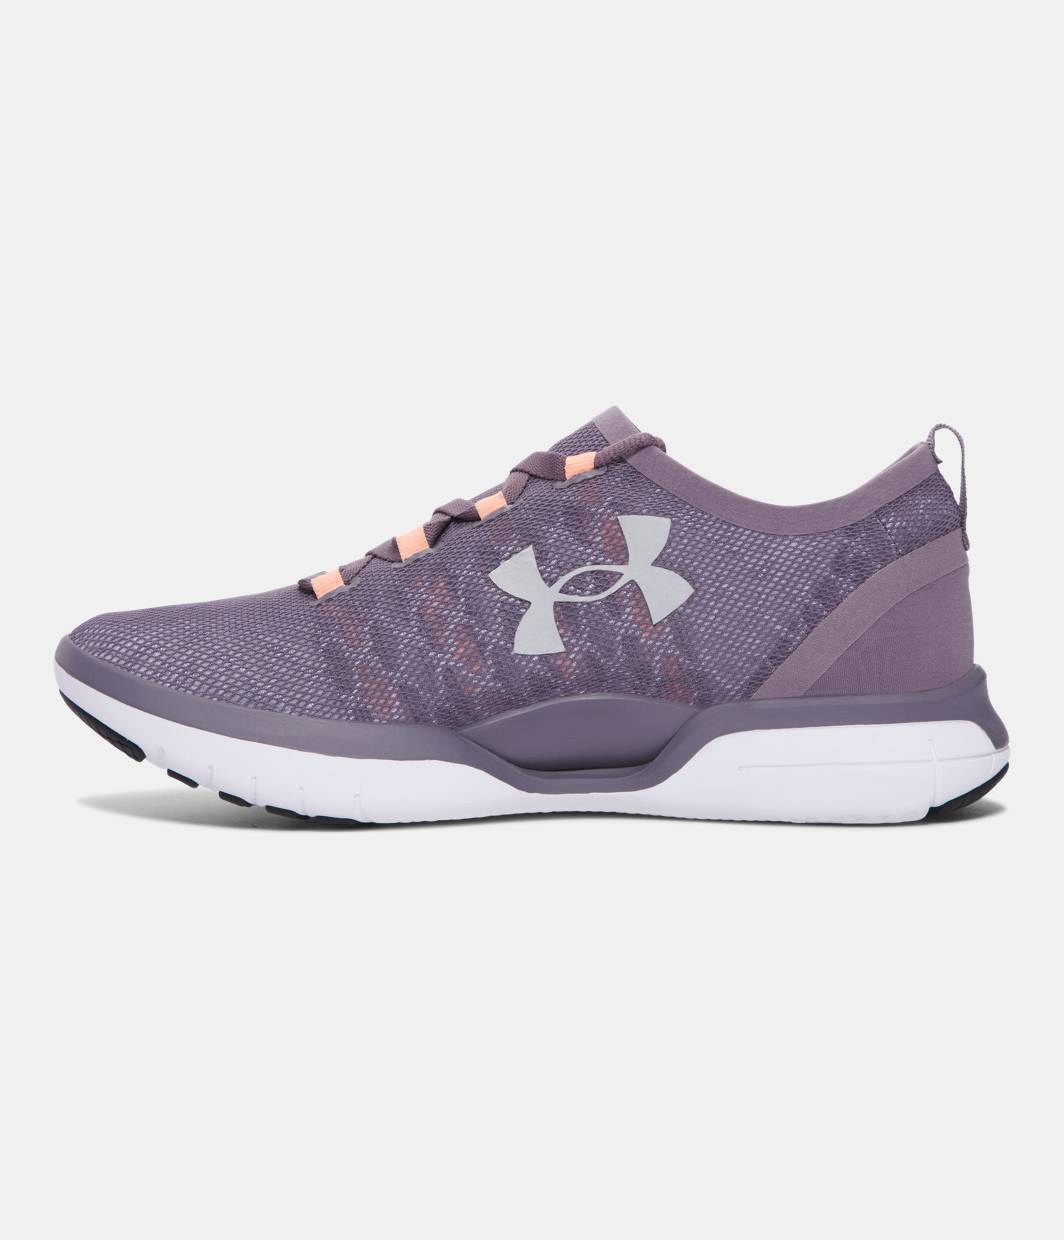 Under Armour Women's Charged Coolswitch Trainers Purple 190085867169 - 6.5 UK Purple